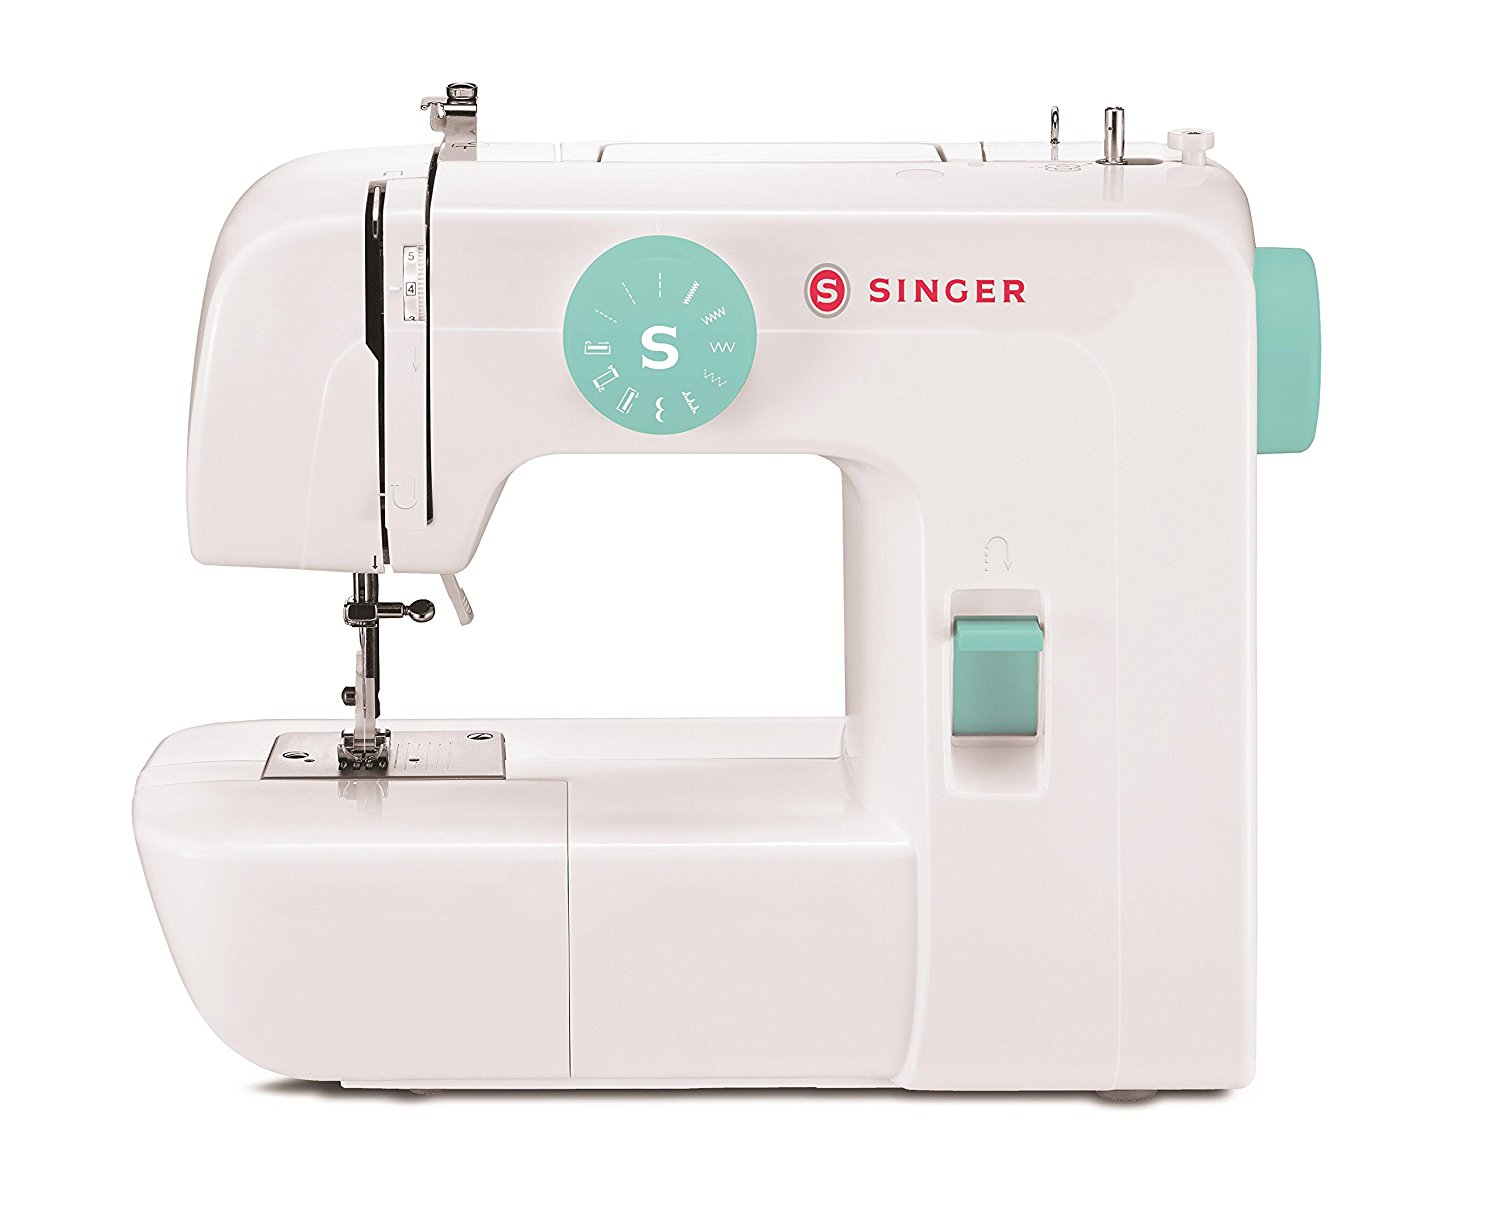 Top 10 Singer Sewing U0026 Embroidery Machines (June 2018) Reviews U0026 Buyers Guide